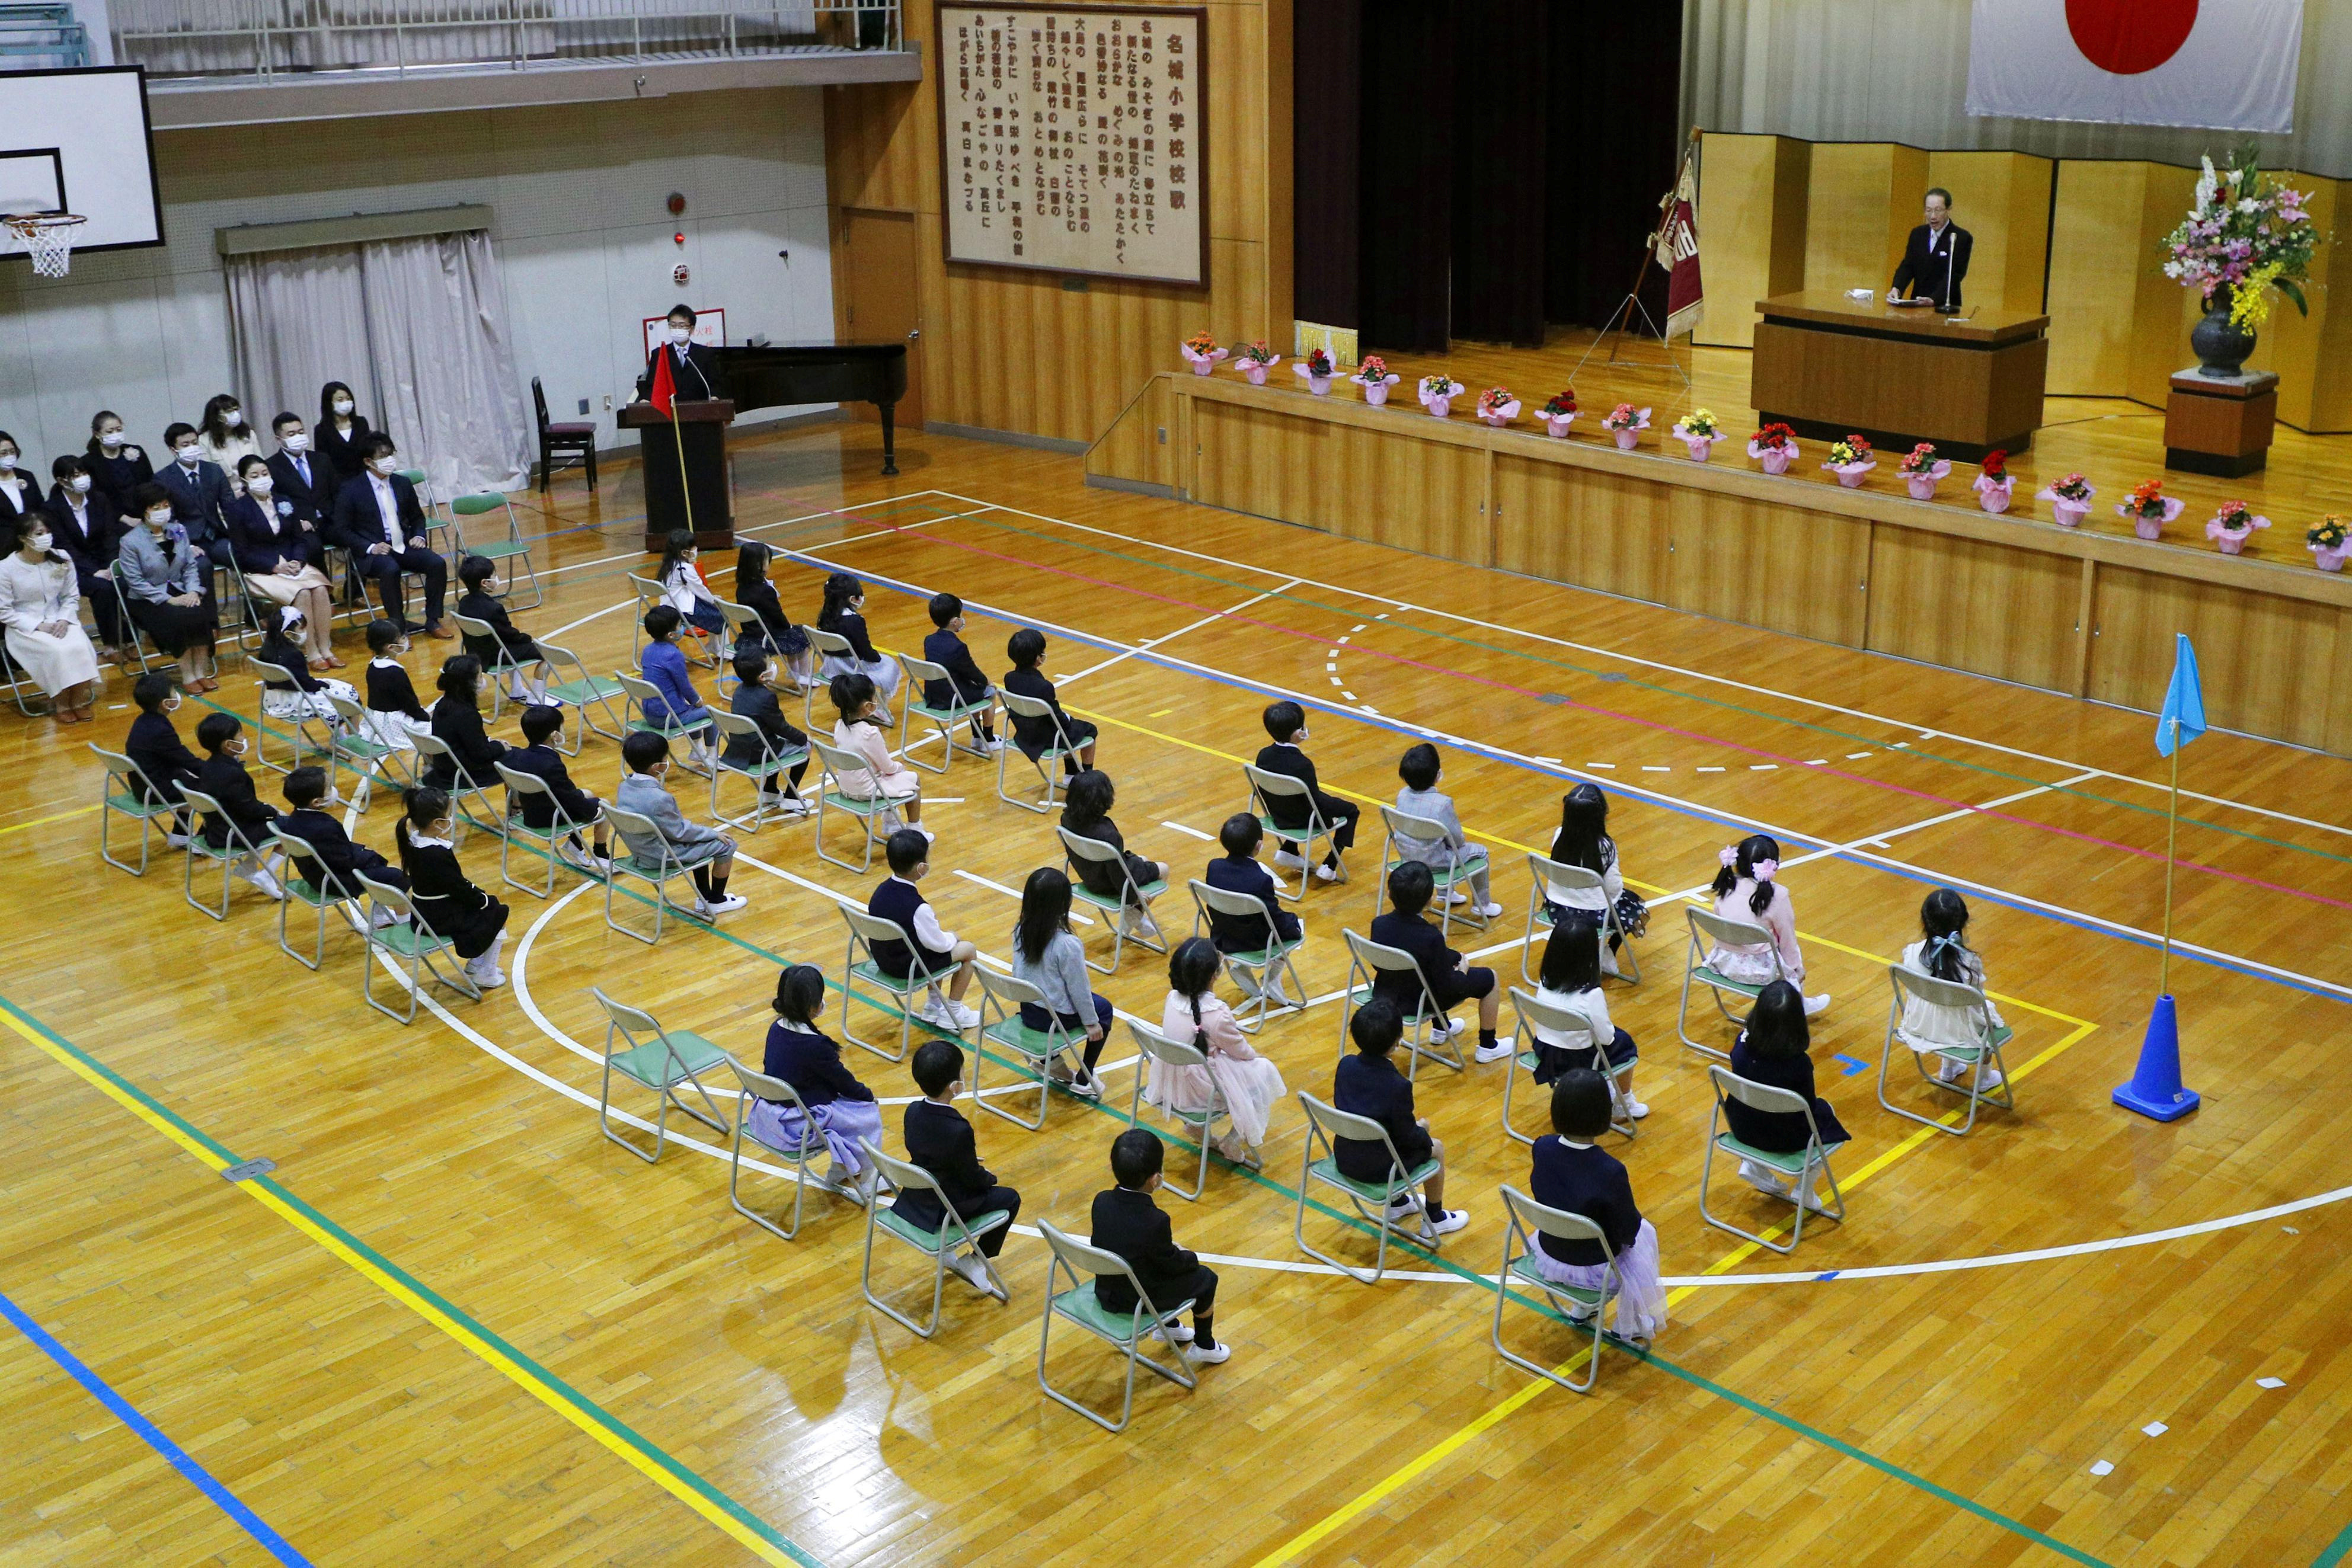 Children attend the entrance ceremony of an elementary school, following the outbreak of the coronavirus disease (COVID-19), in Nagoya, Japan, in this photo taken by Kyodo April 6, 2020. Mandatory credit Kyodo/via REUTERS ATTENTION EDITORS - THIS IMAGE WAS PROVIDED BY A THIRD PARTY. MANDATORY CREDIT. JAPAN OUT. NO COMMERCIAL OR EDITORIAL SALES IN JAPAN. - RC2RYF9IDEED